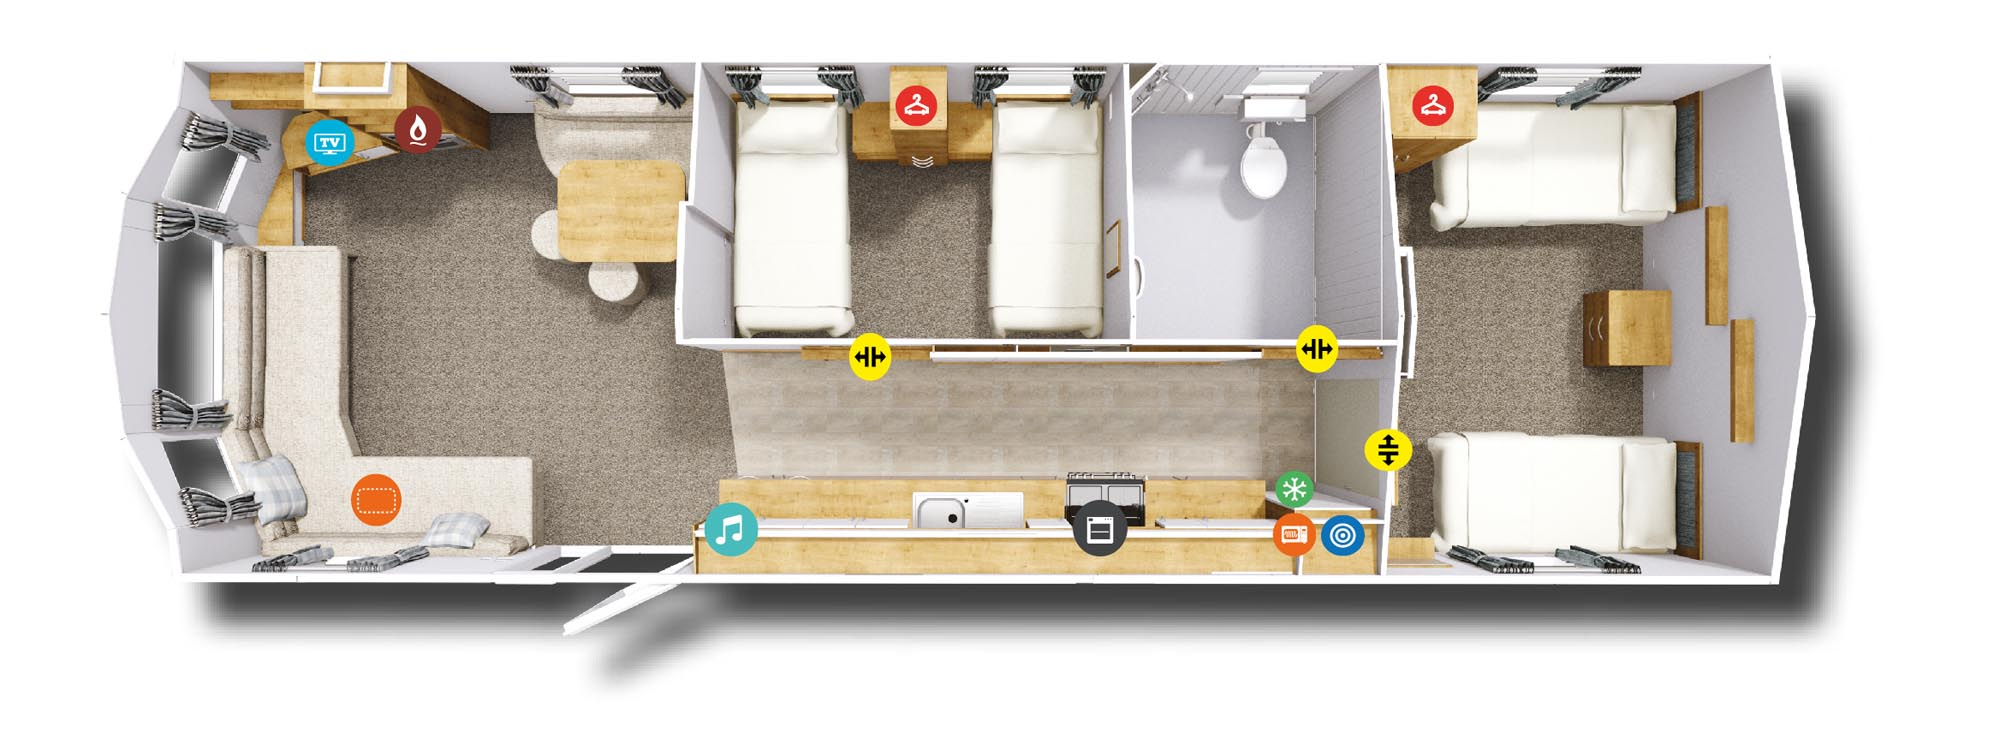 Click/tap on floorplan to view larger